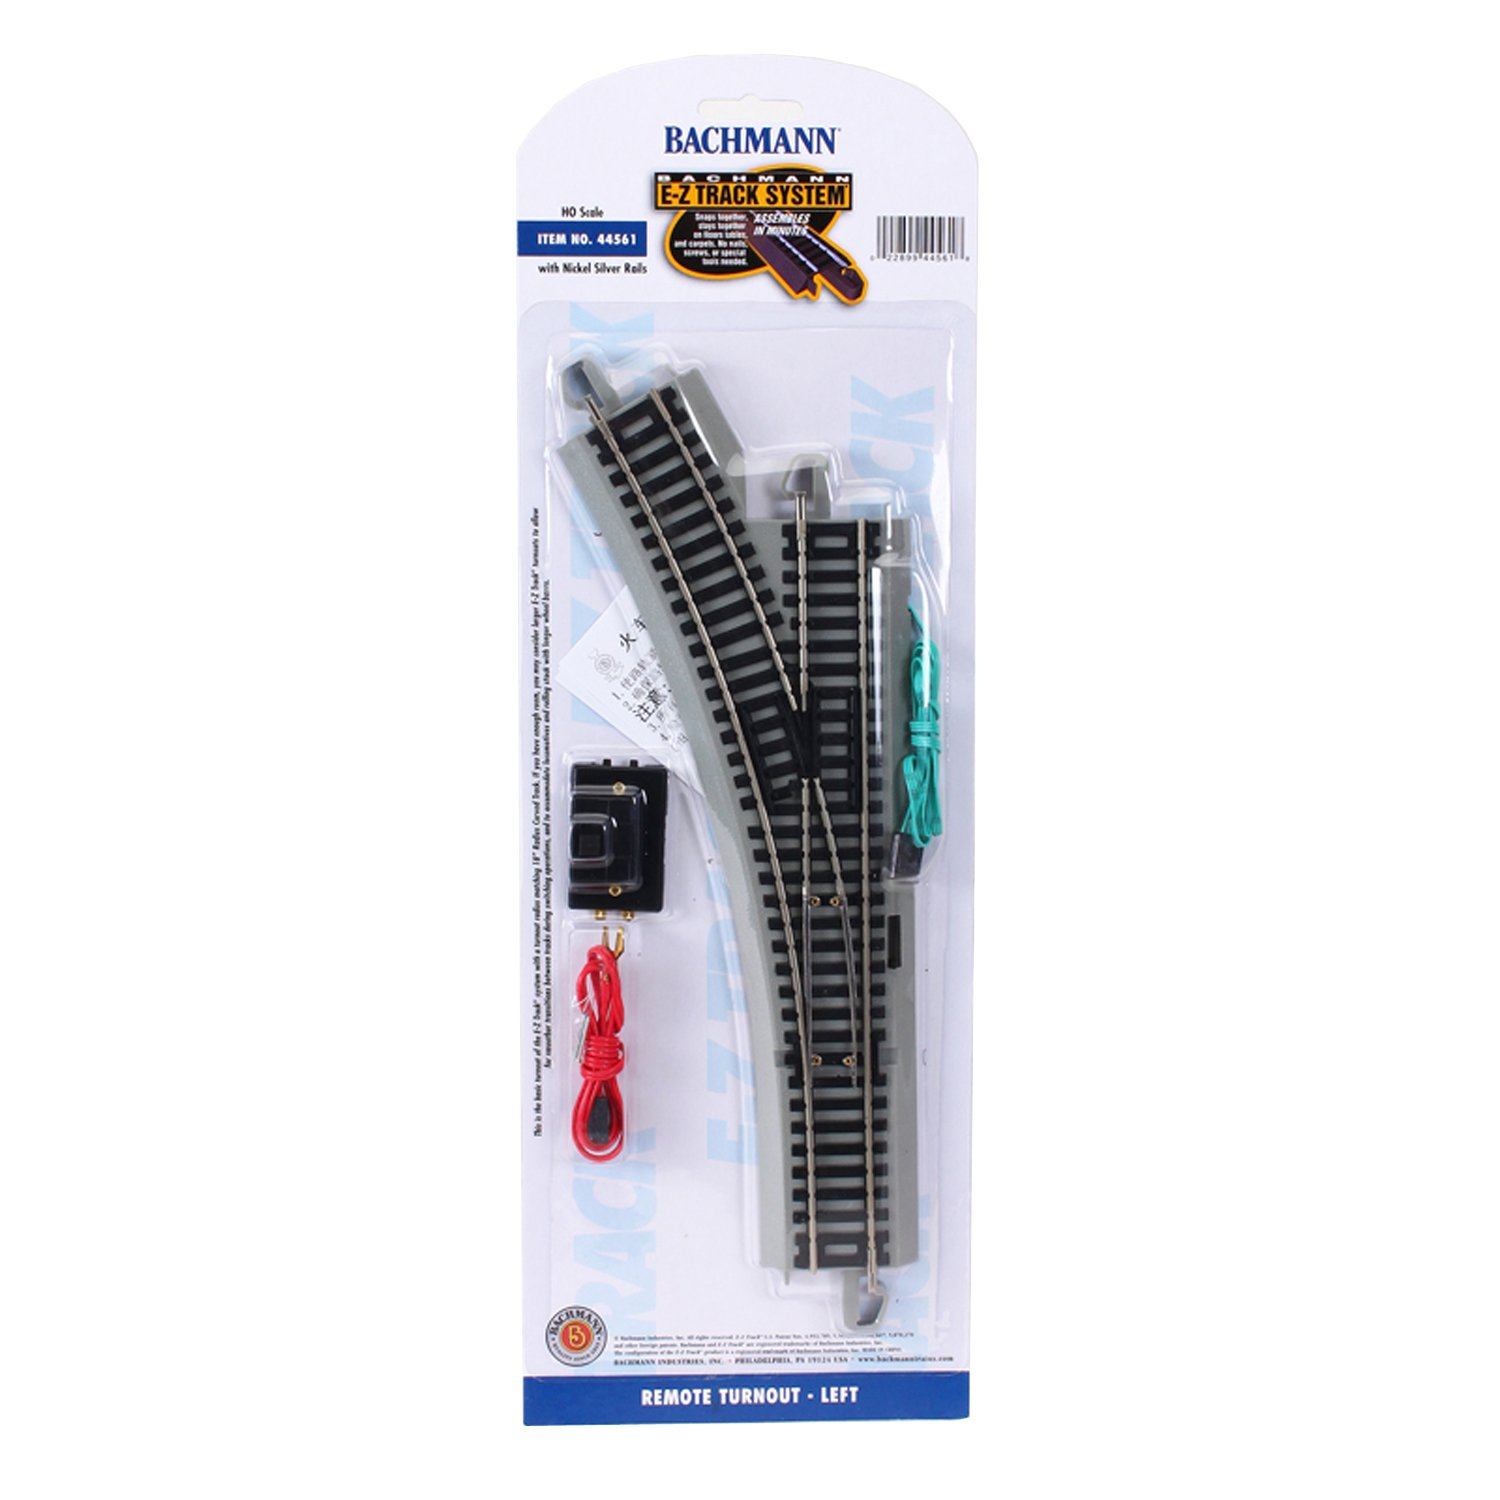 Ho Scale Bachmann Trains Snap Fit E Z Track Remote Double Wiring Dcc Turnout Left Toys Games